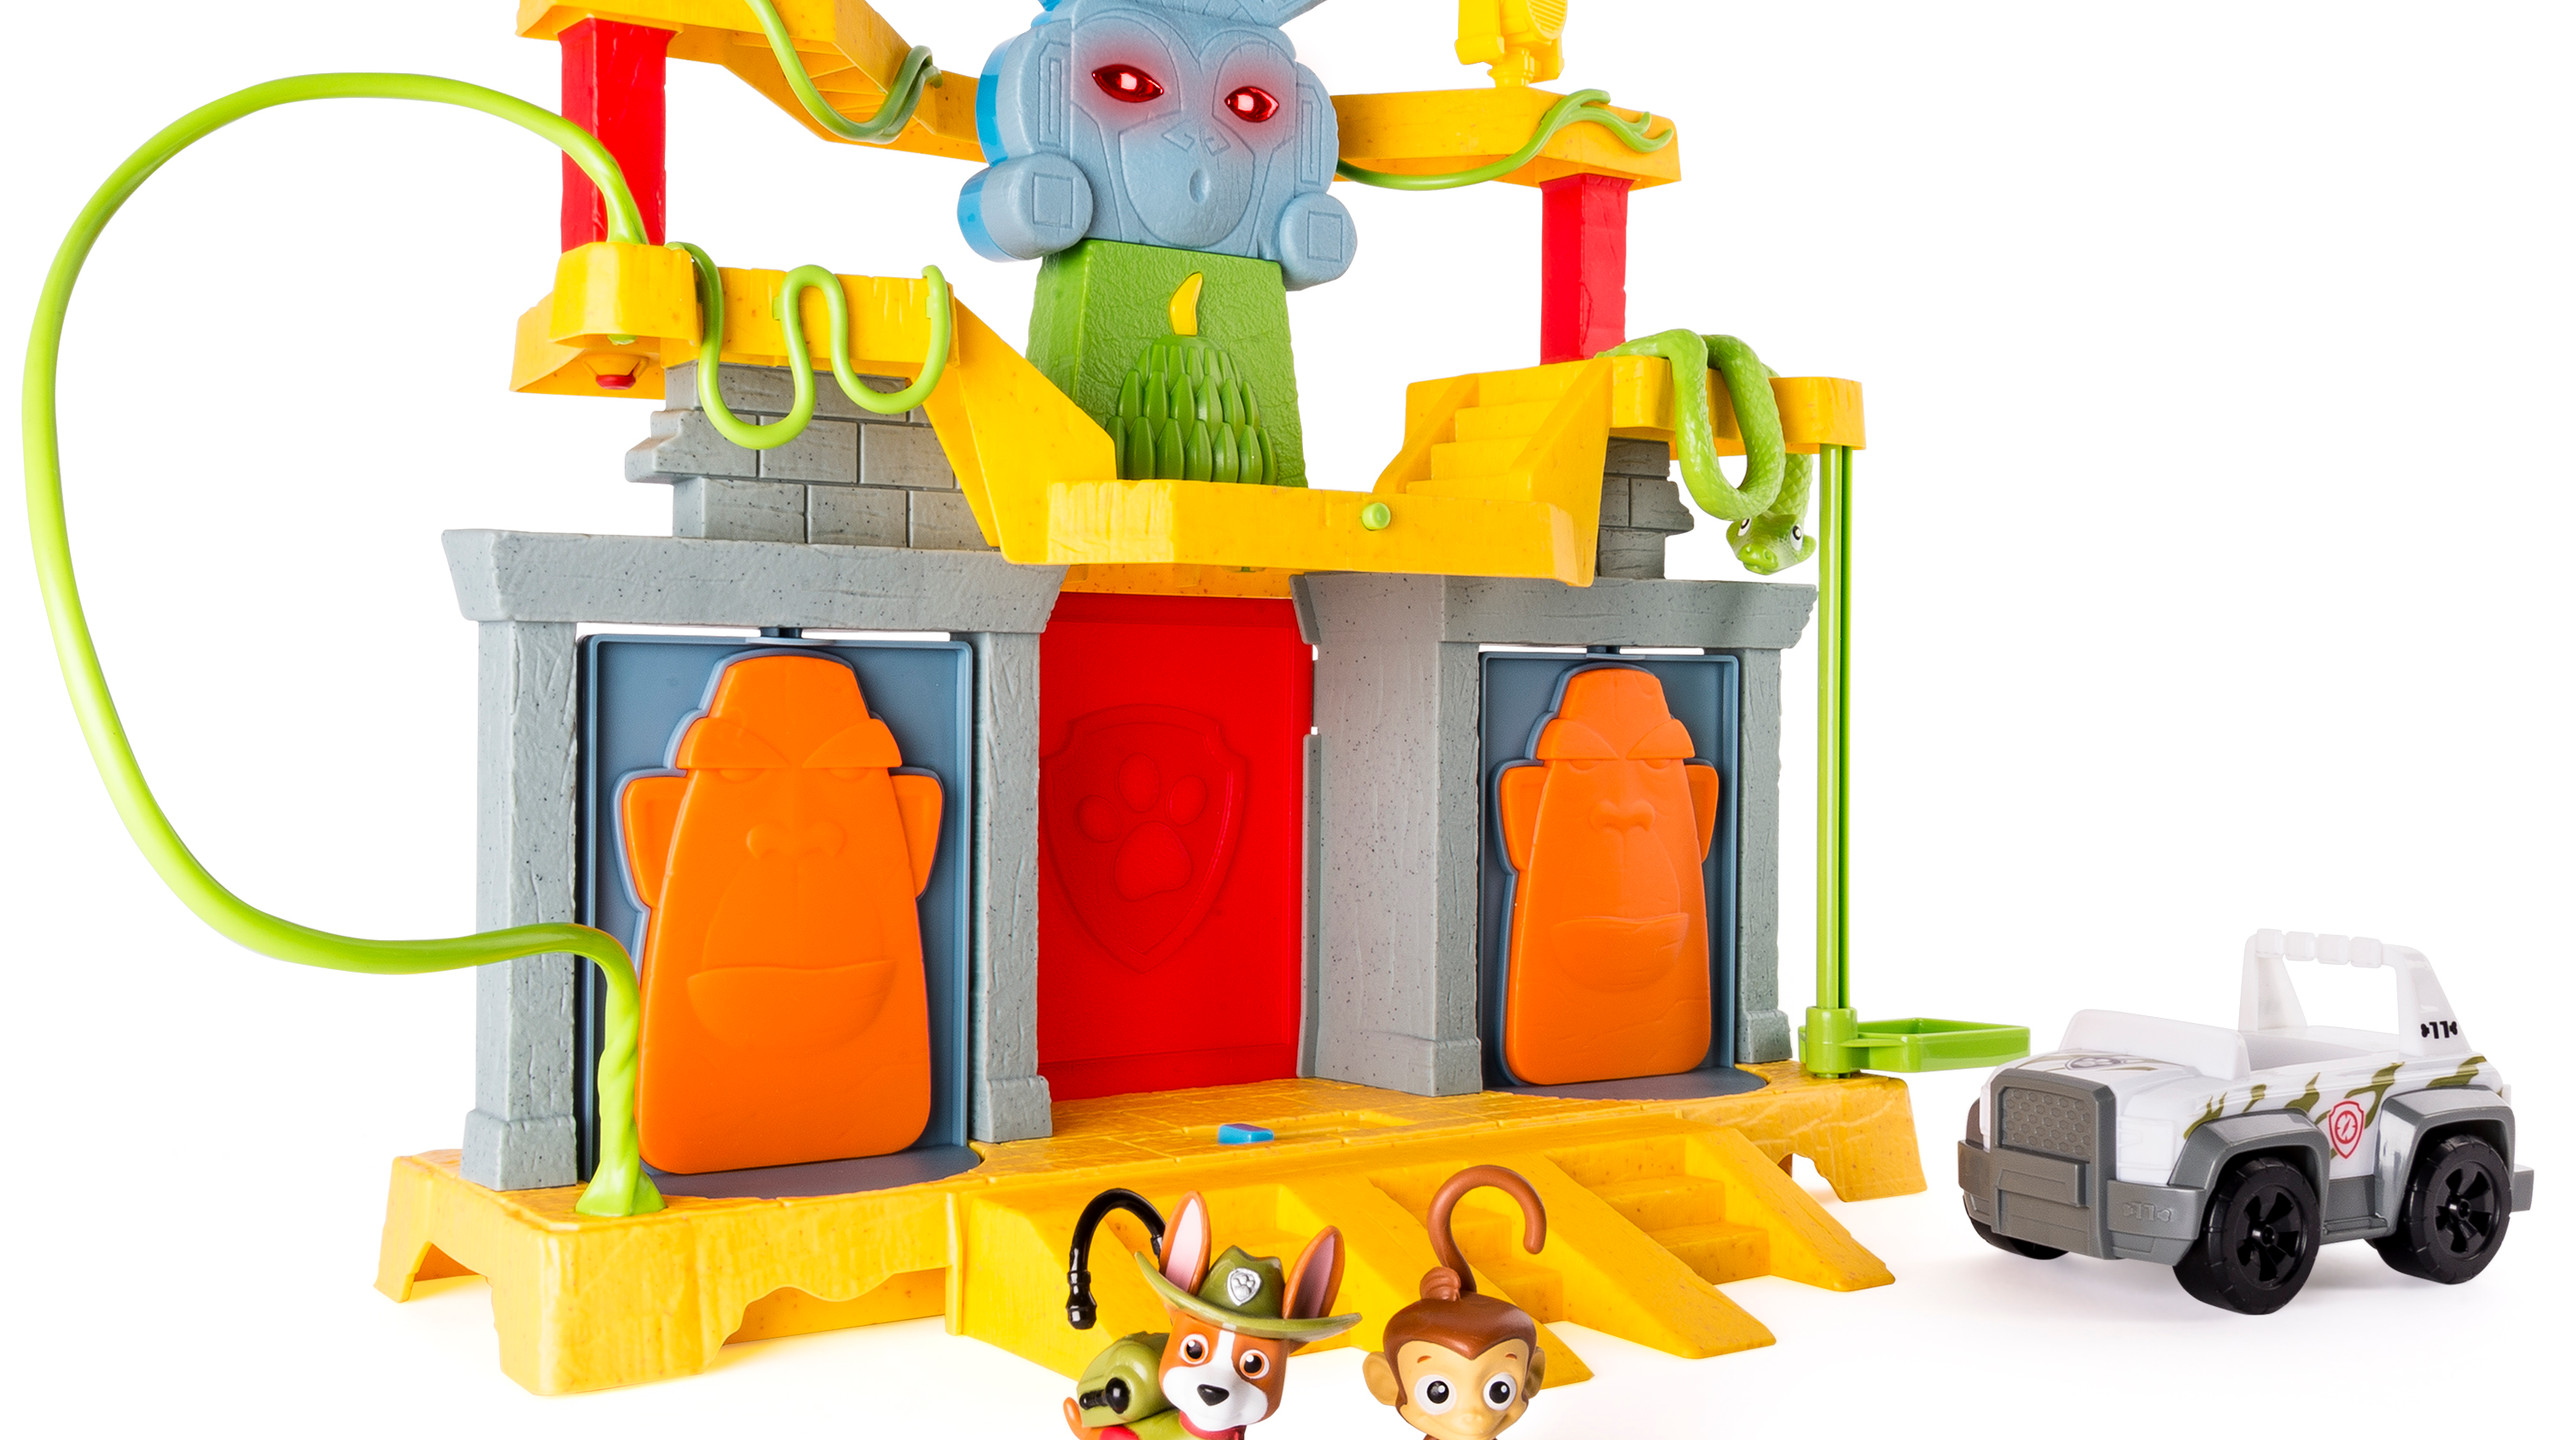 778988231111_20073503_Paw Patrol_Monkey Temple Playset_UPCX_GBL_Product_1